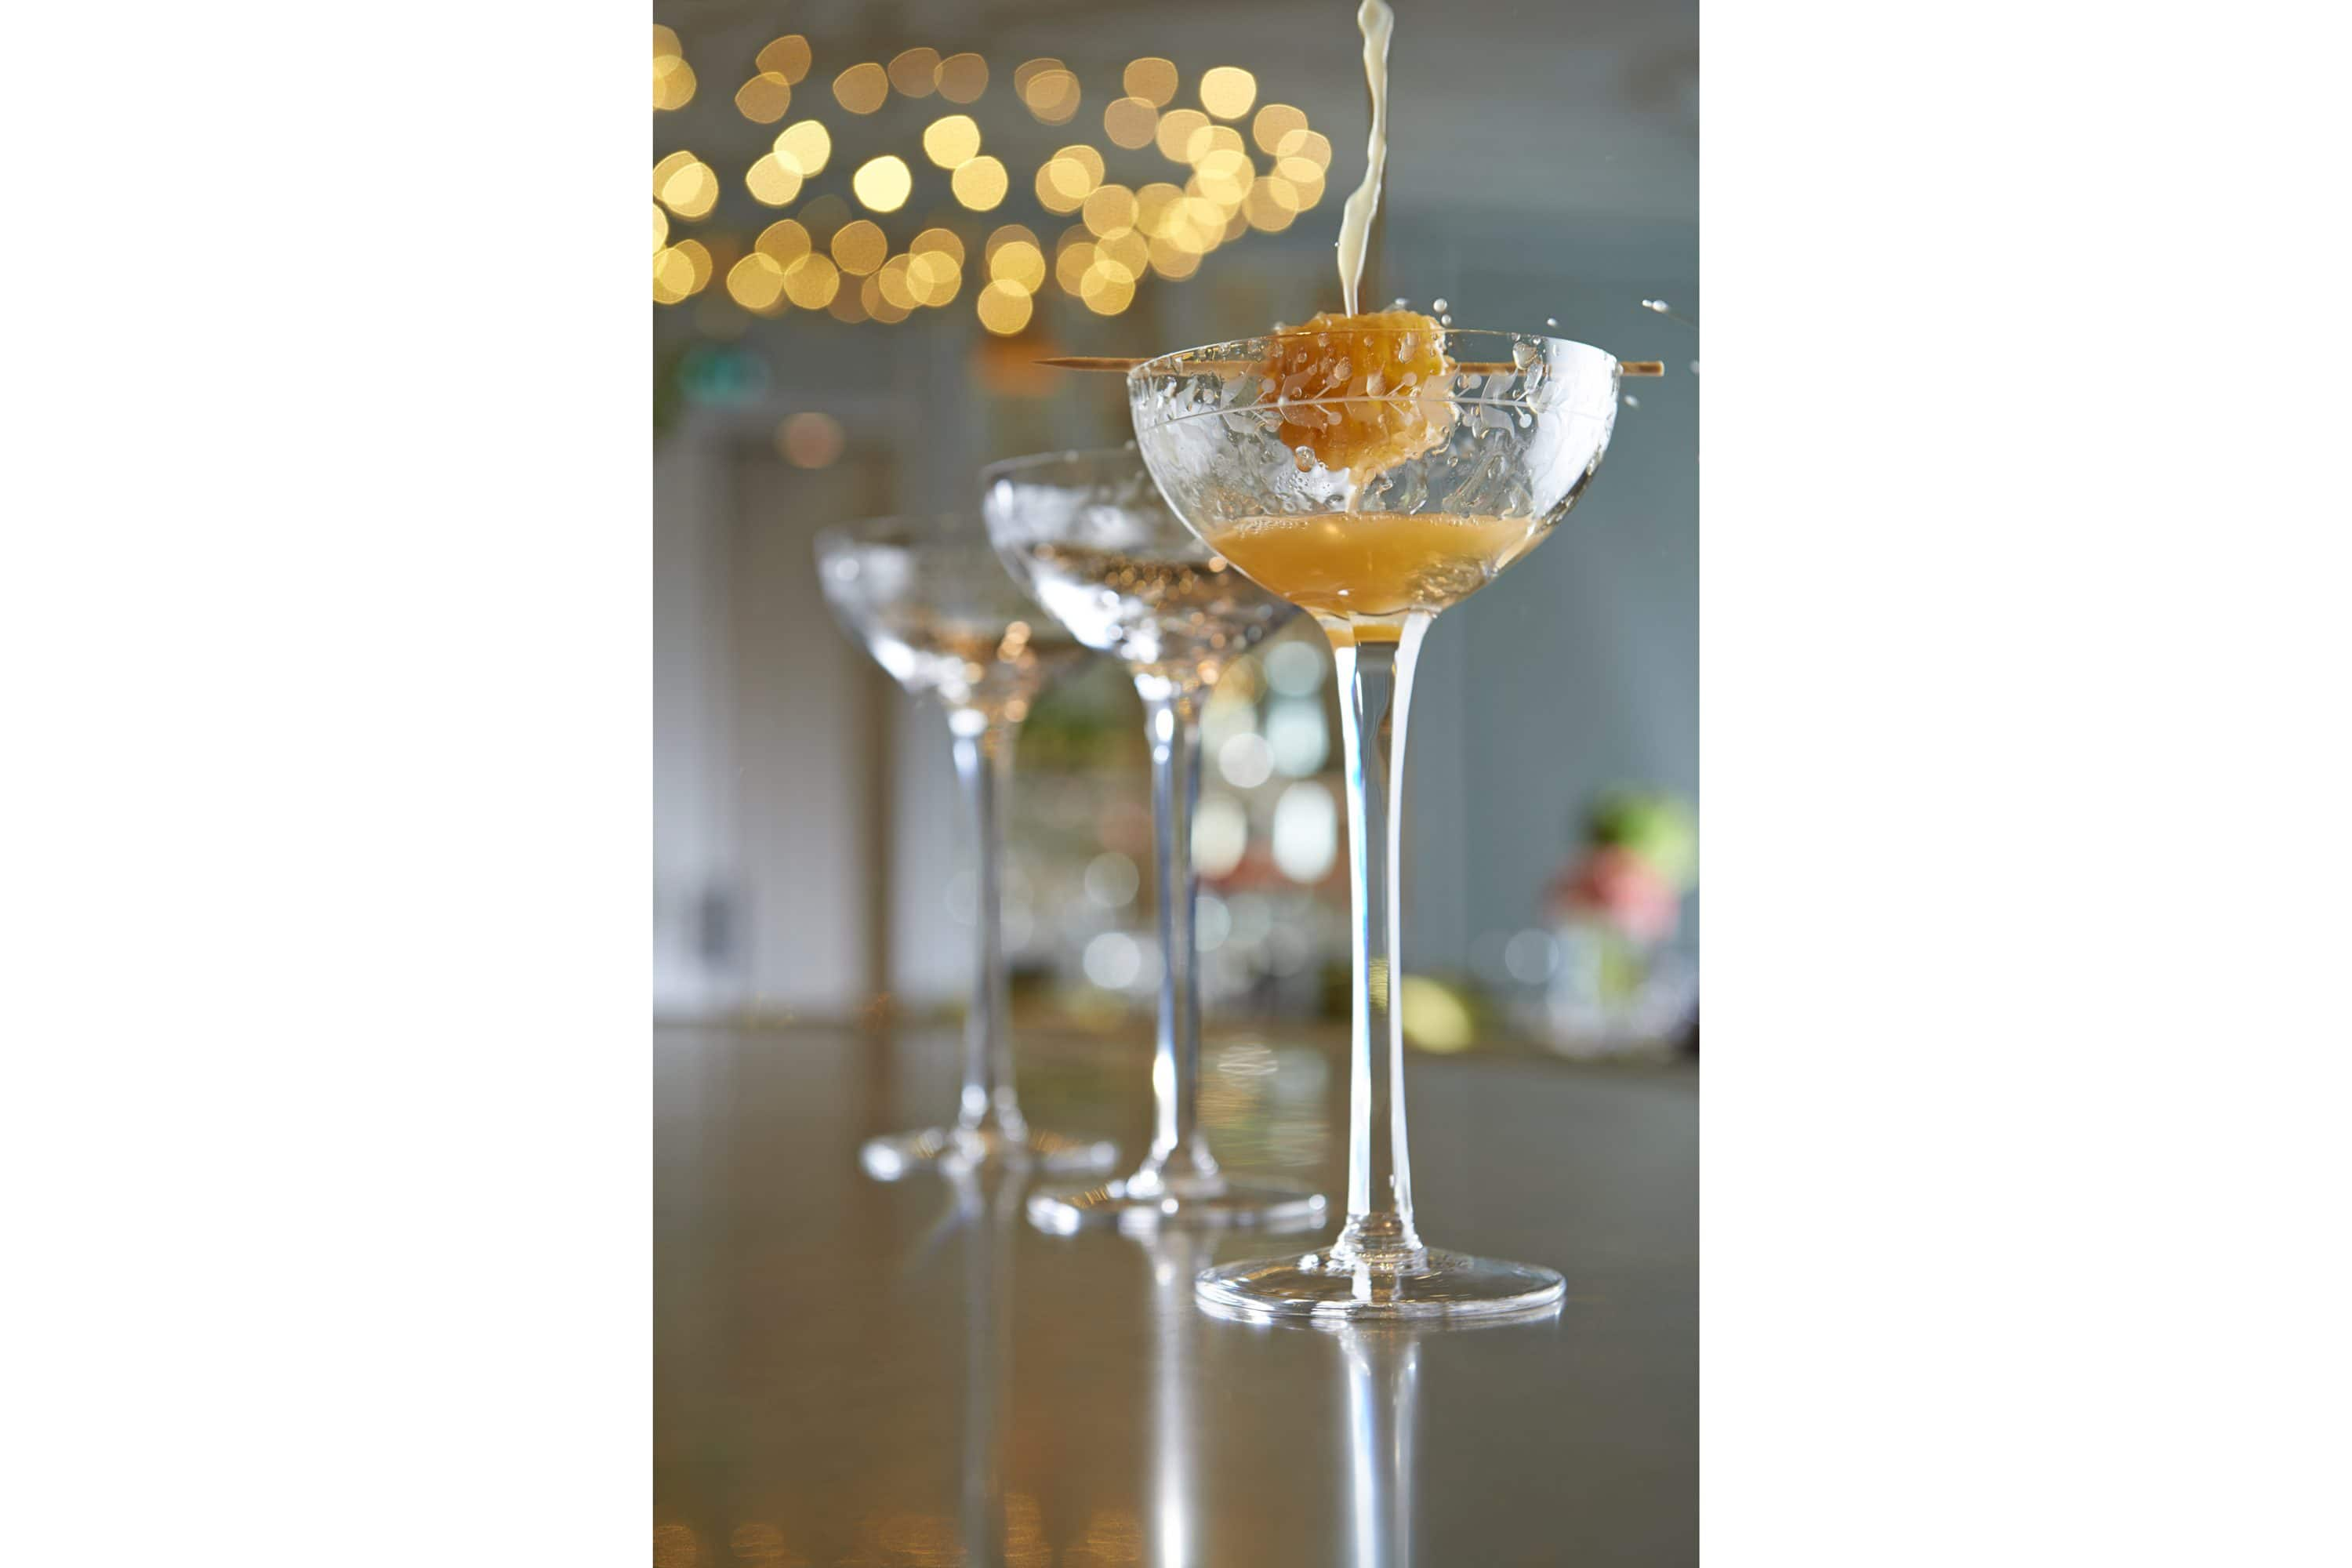 Cocktail glasses with garnish at The Rosebery